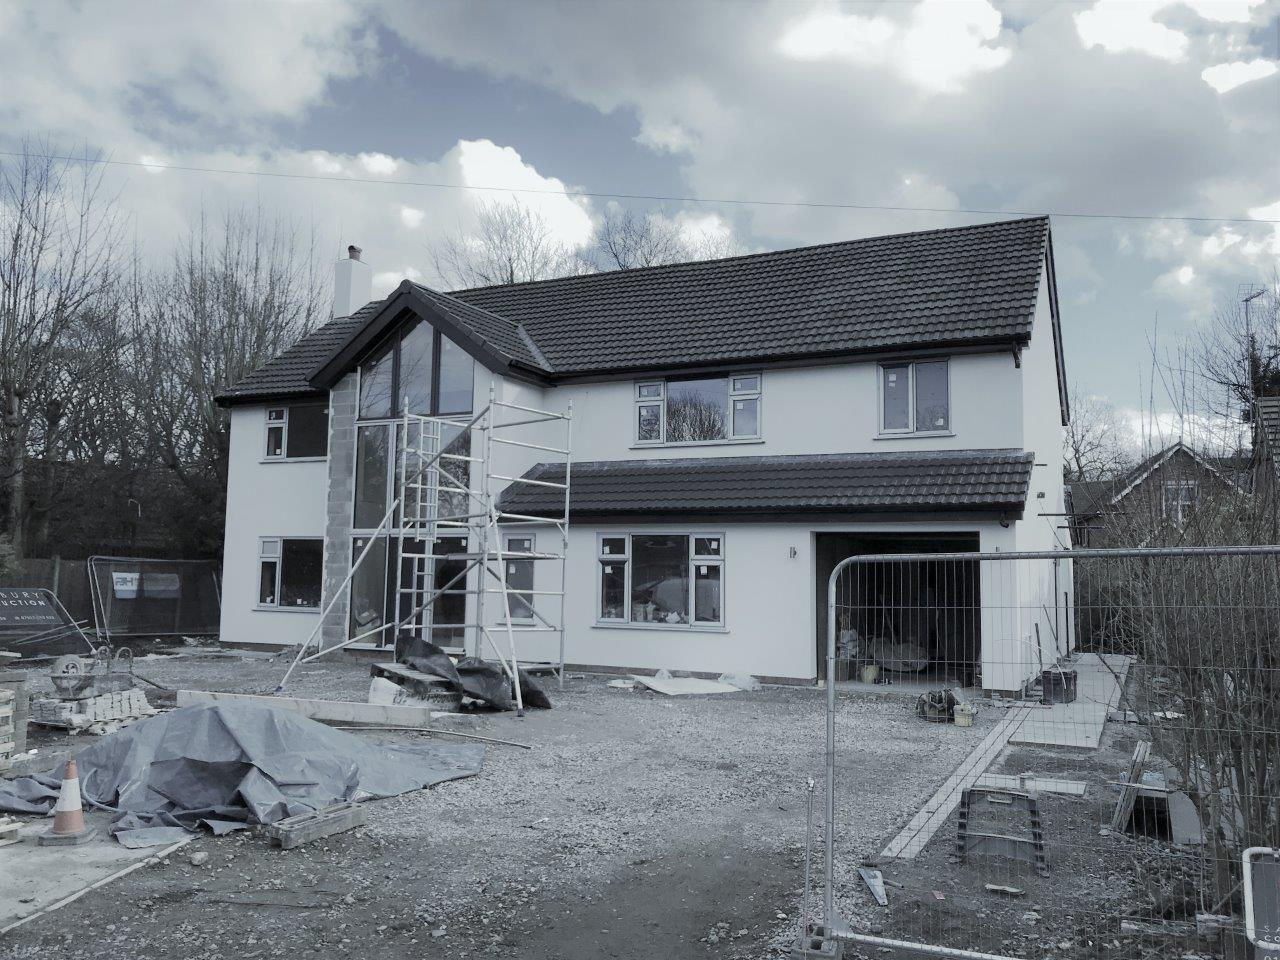 Latest News - PJH Architectural Services